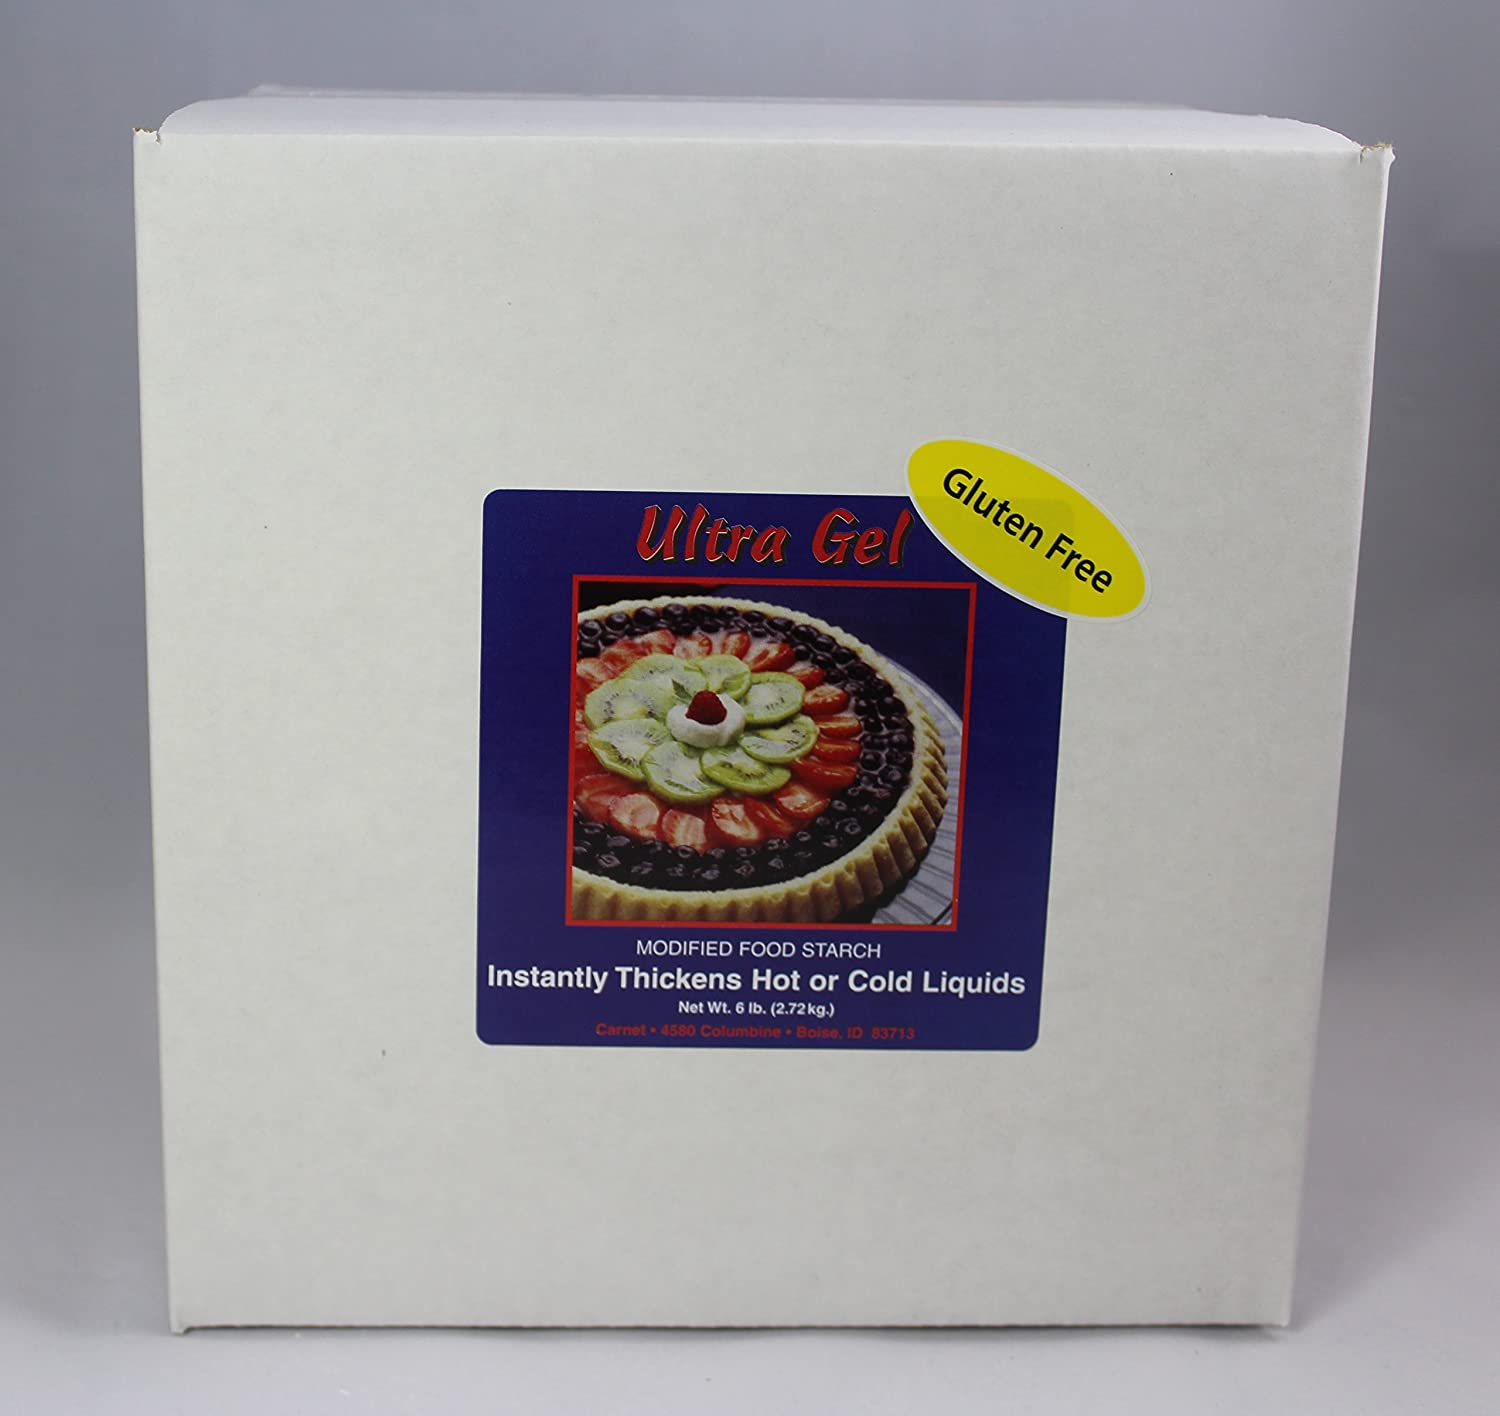 6 lb Ultra Gel Gluten-Free Non-GMO Instant Thickener - Great Cook's Choice for 25 years